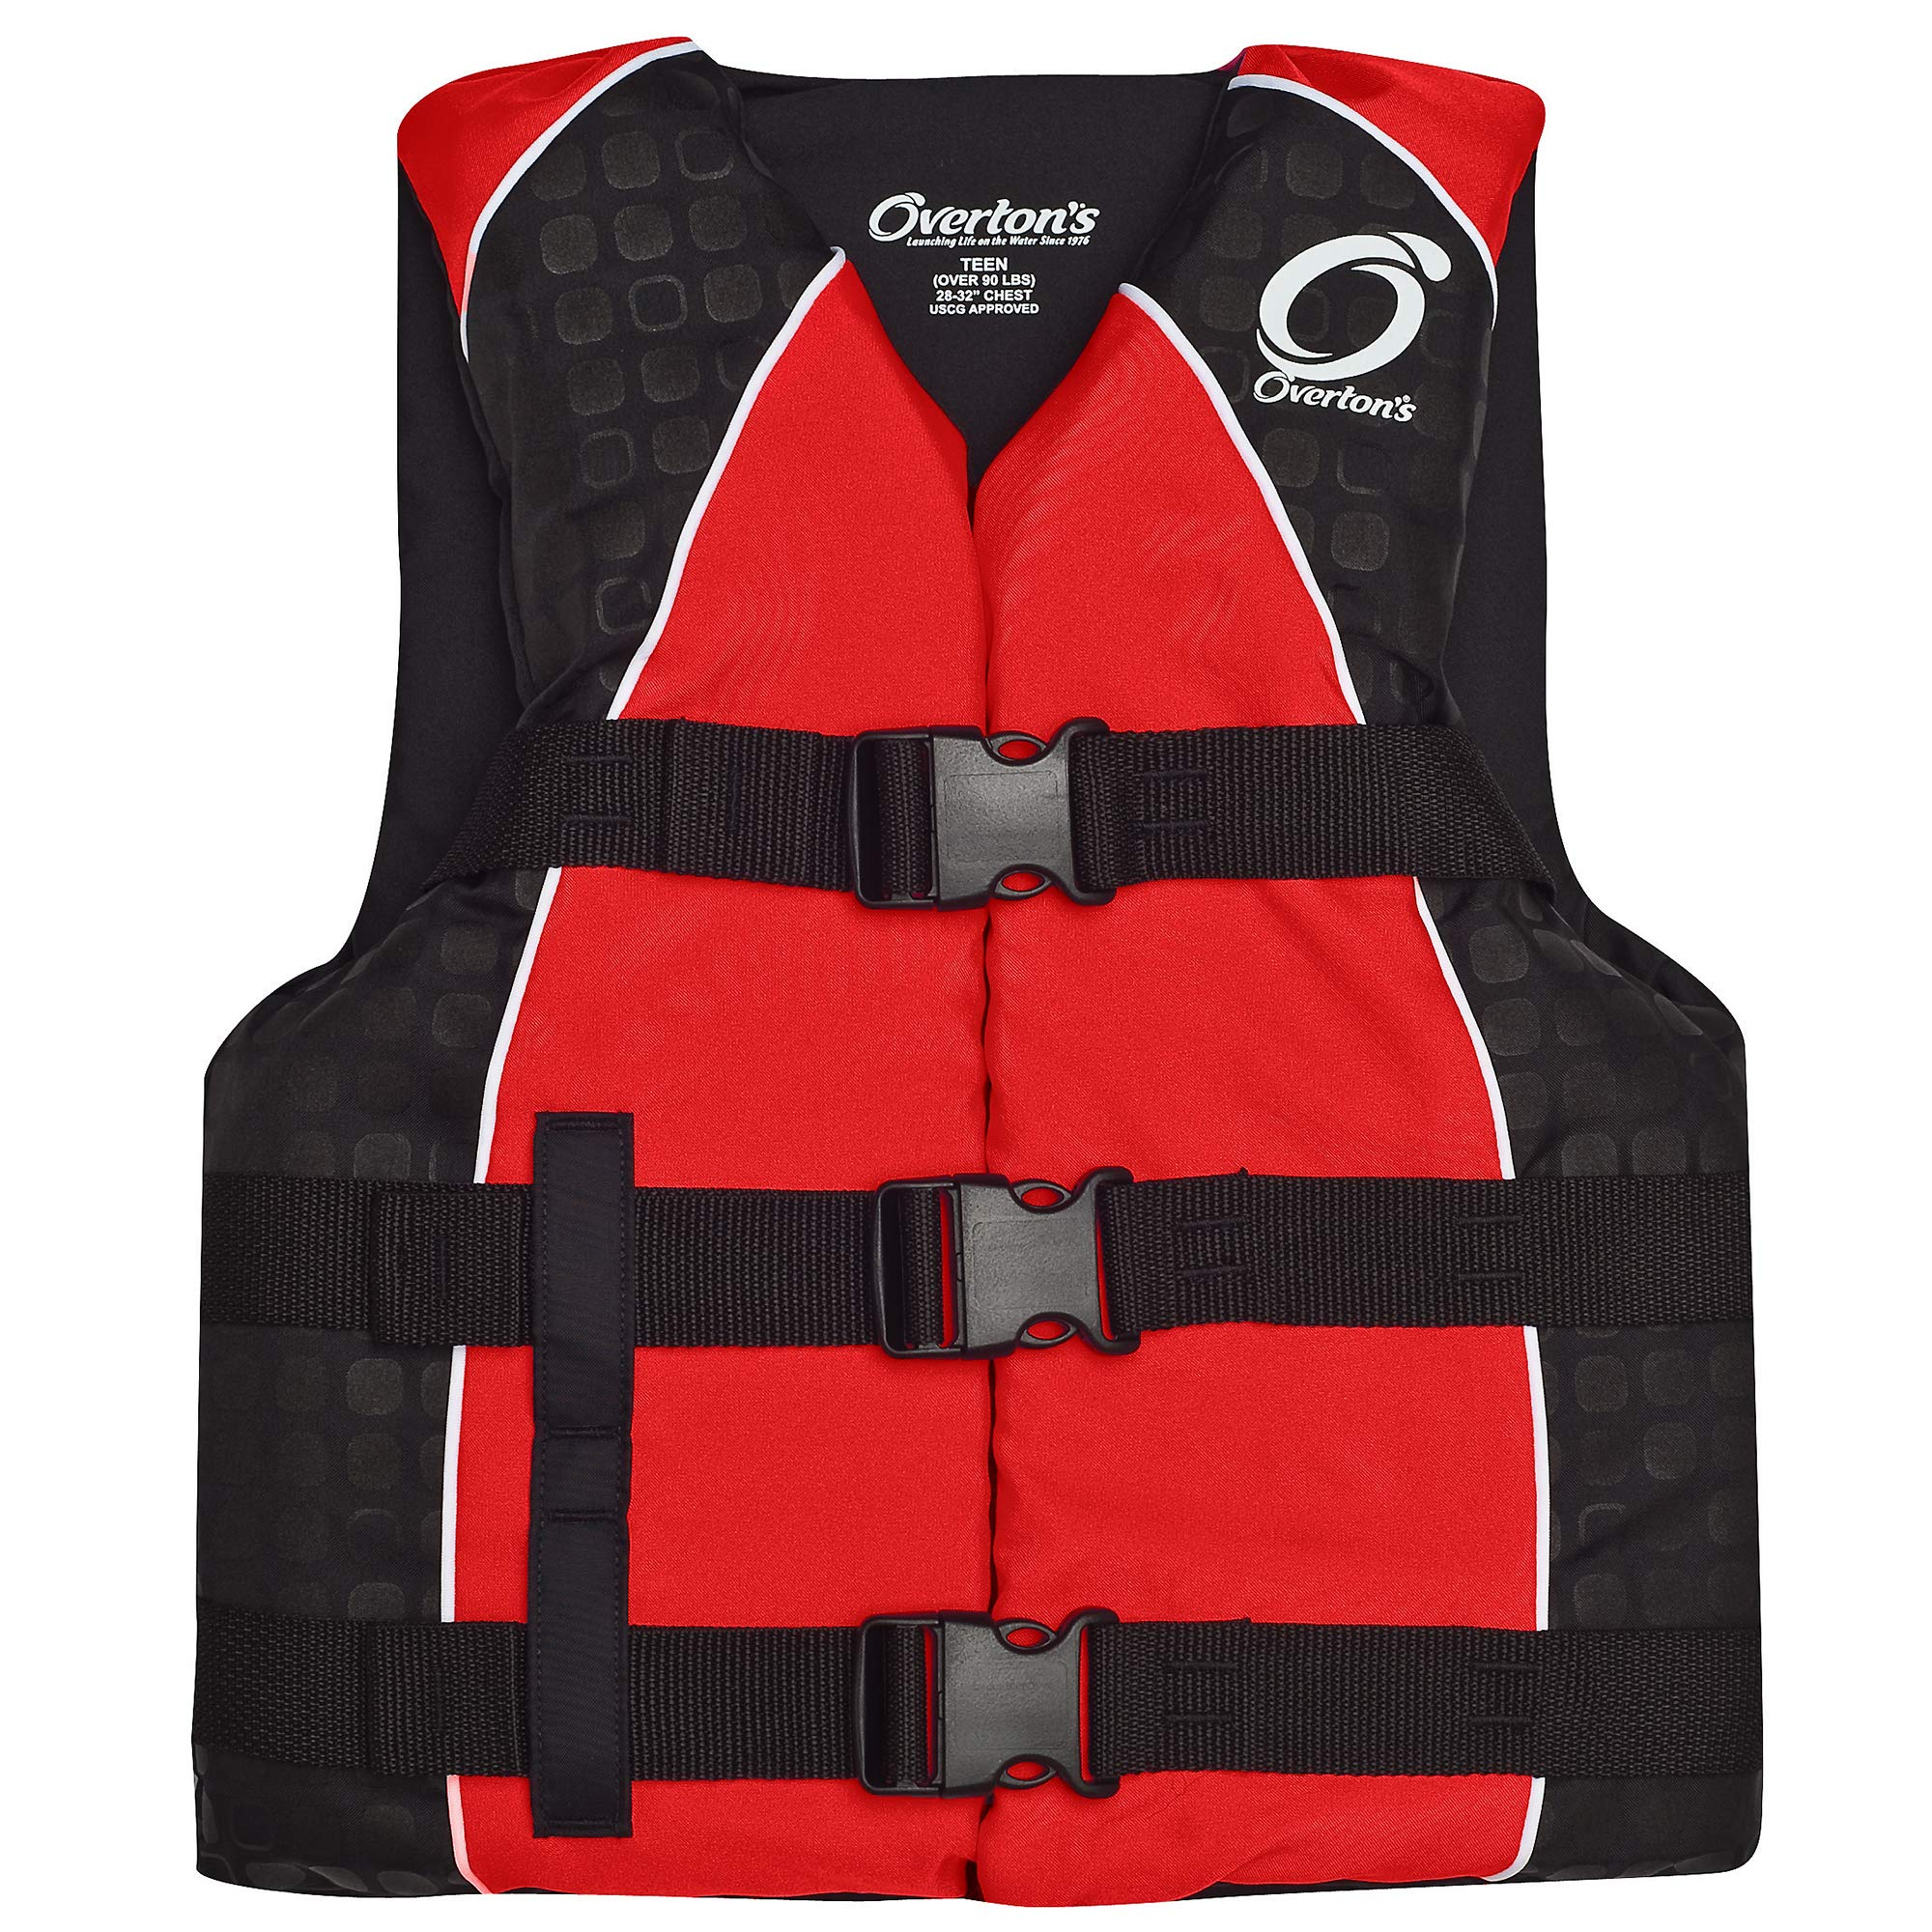 Overton's 3-Buckle Teen Nylon Vest Red (Teen) by Overton's